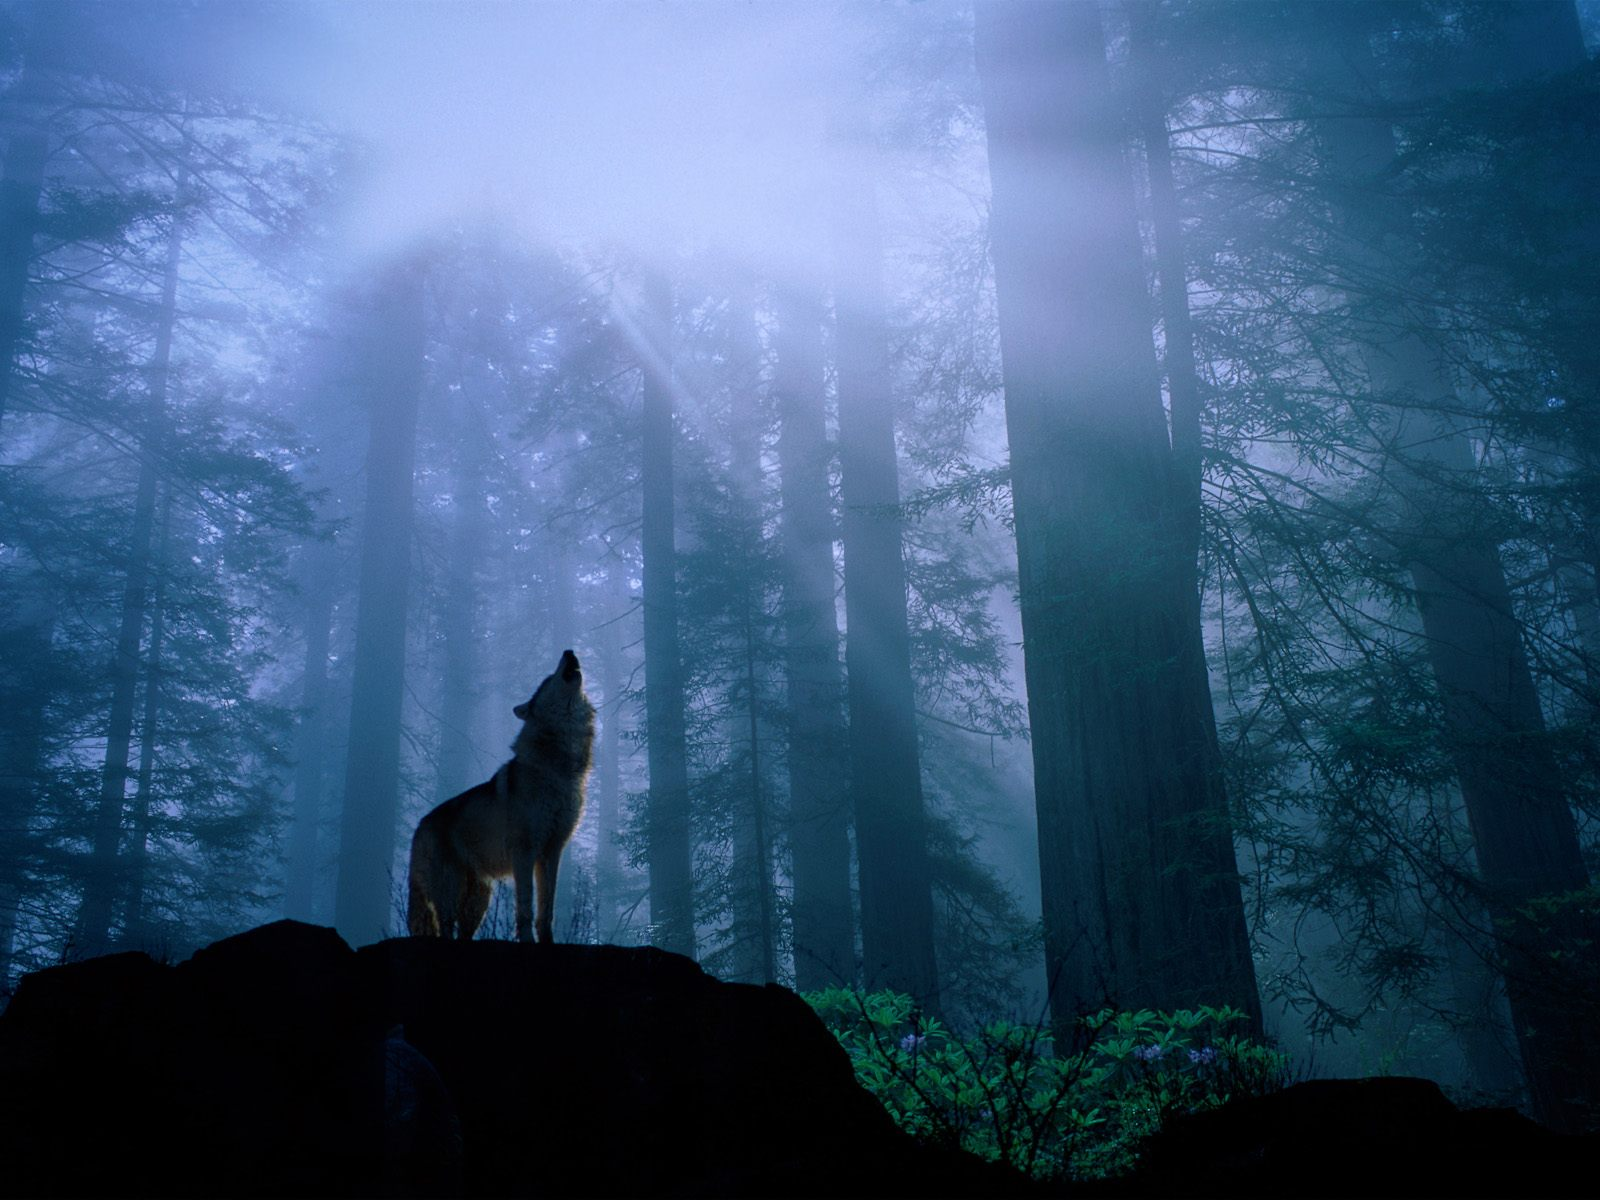 Lonely wolf hauling in the forest clearing at dawn